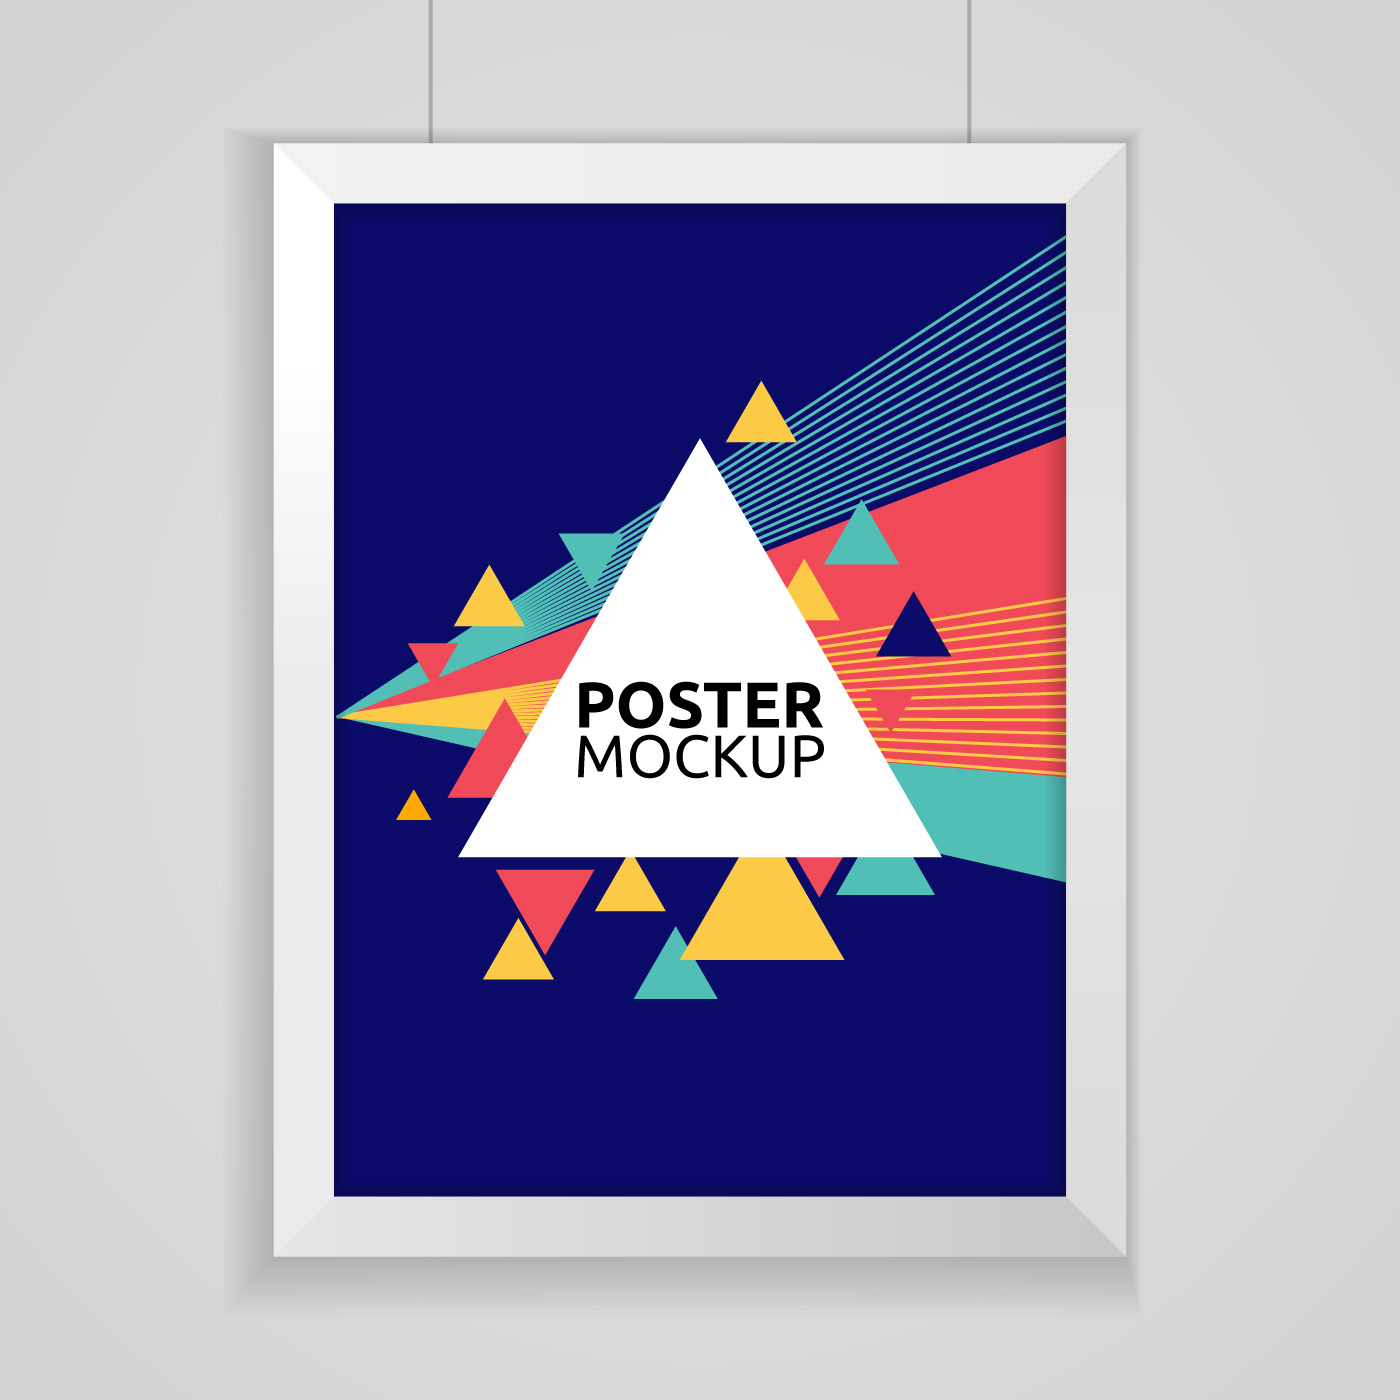 Poster Mockup Vector Download Free Vector Art Stock Graphics Amp Images